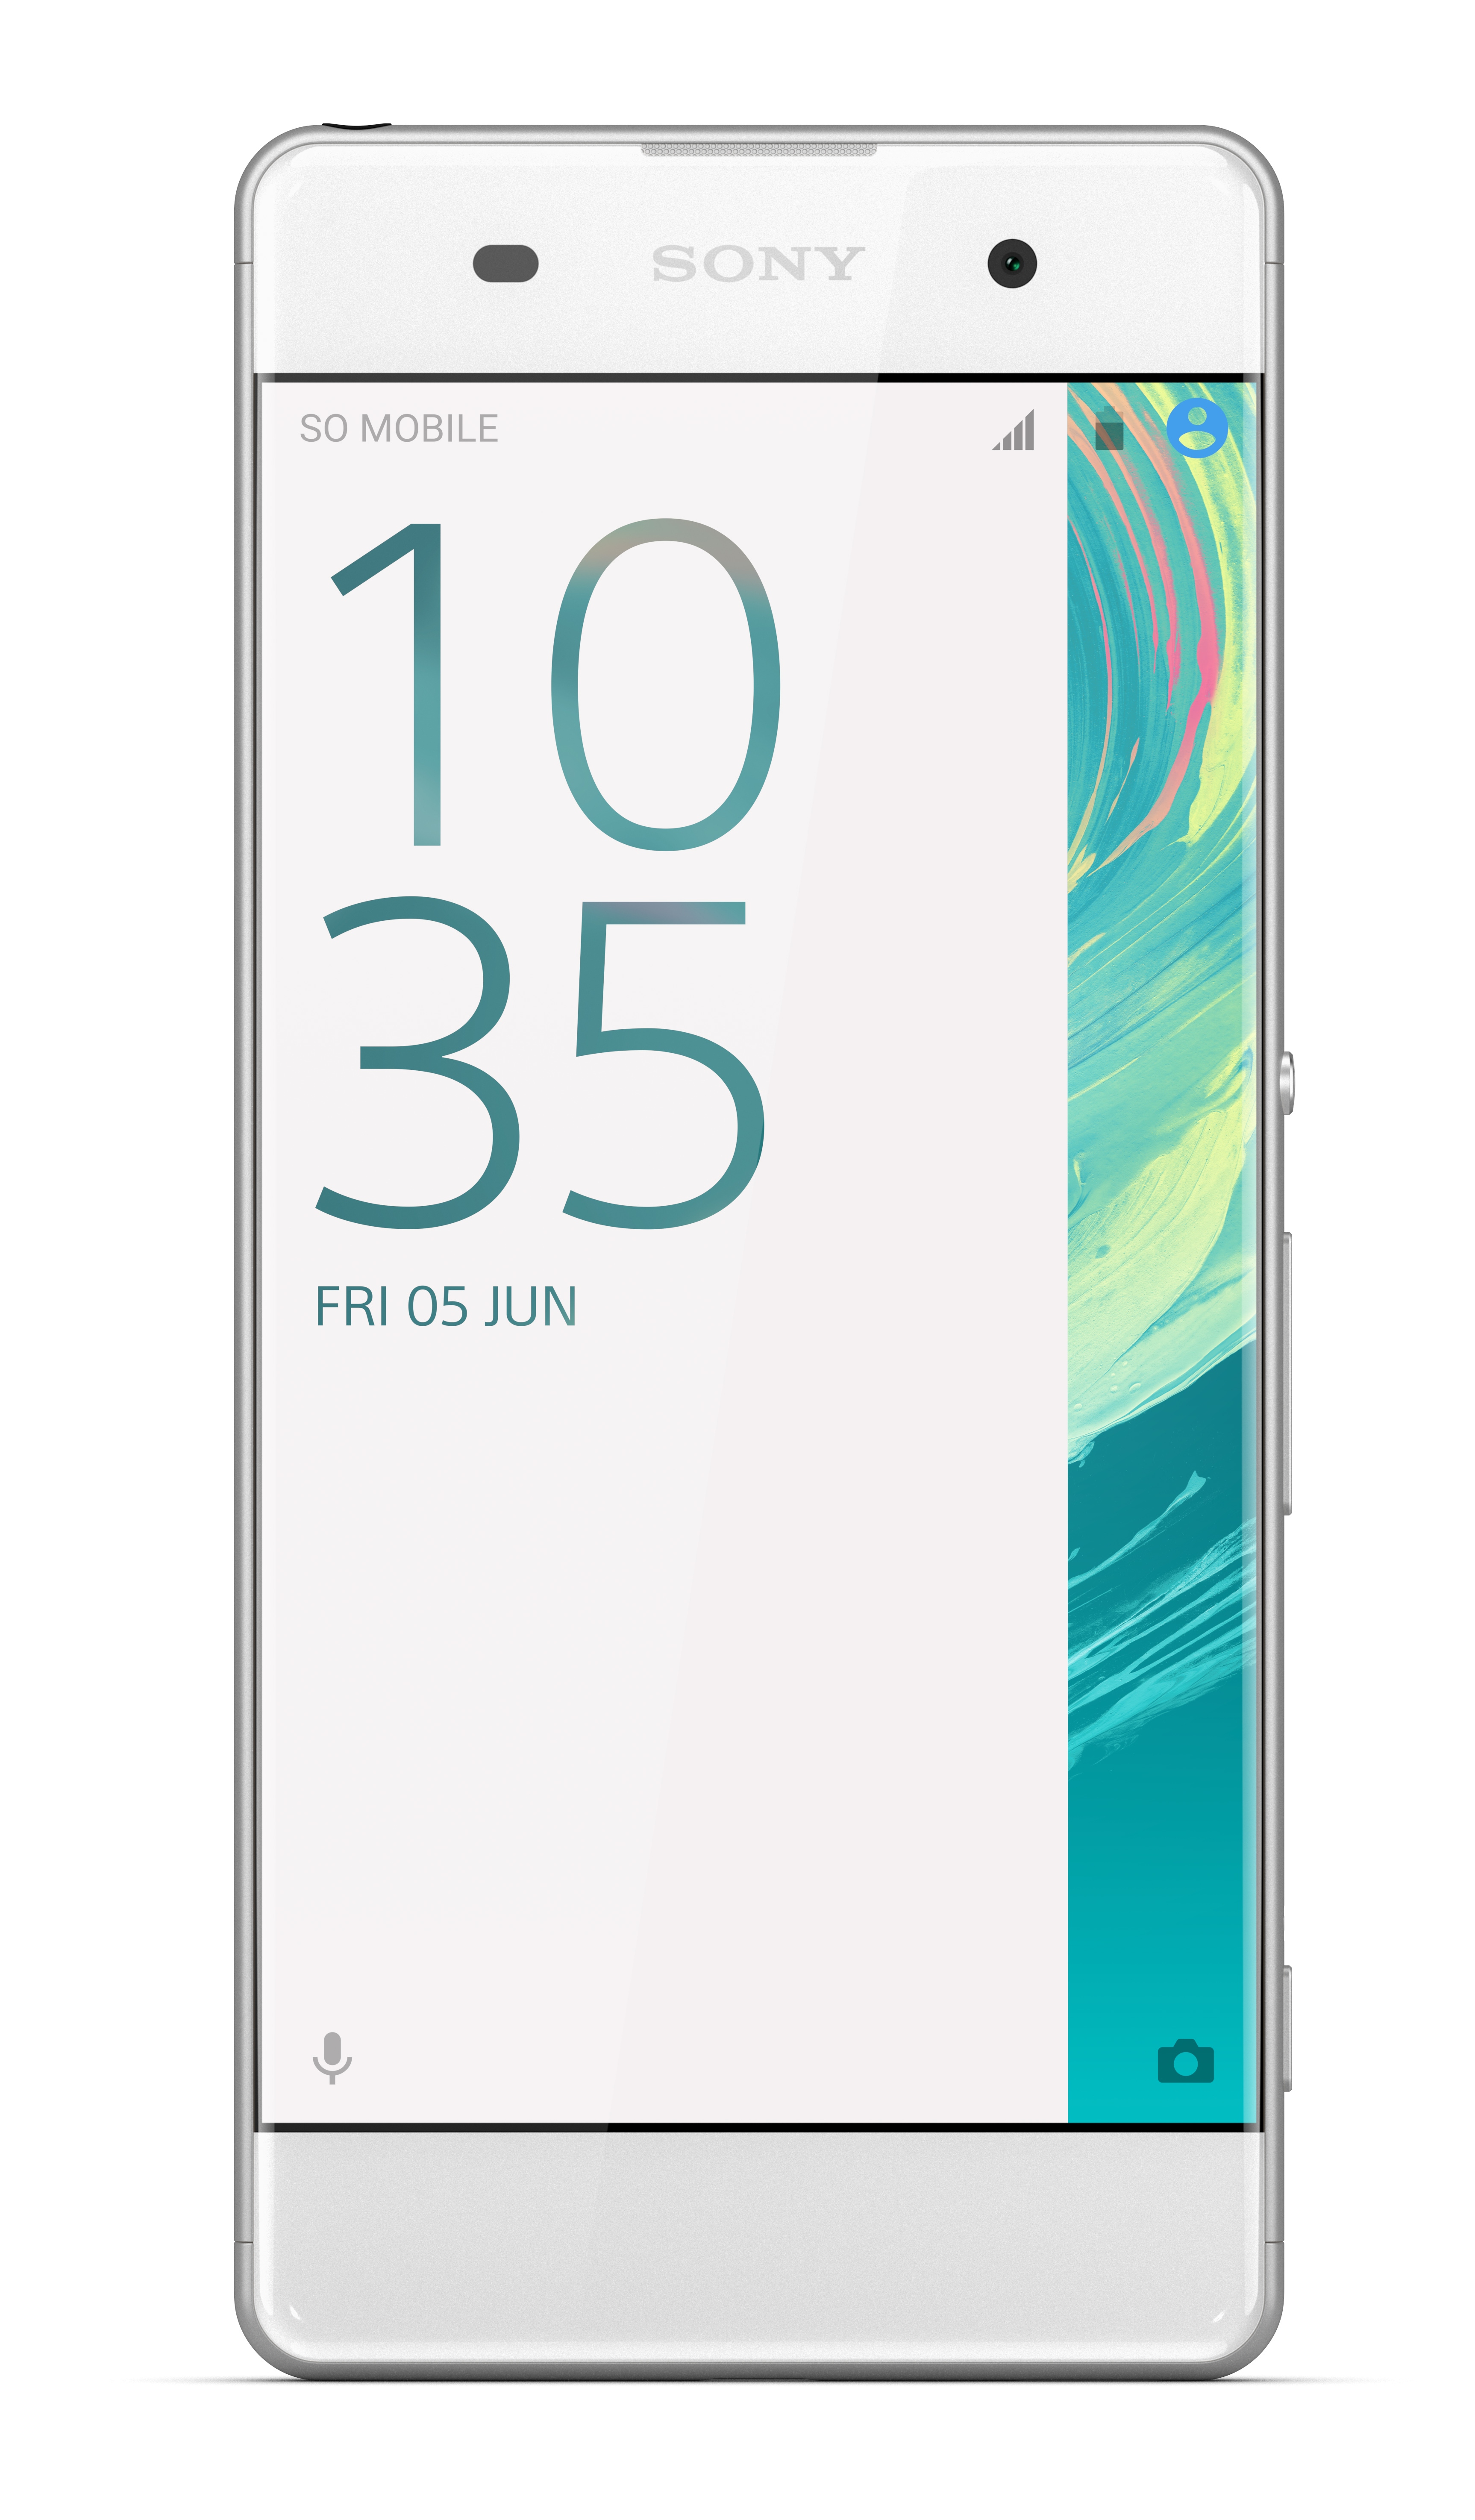 Core android 4 1 mobile phone smartphone unlocked touch white ebay - Sony Xperia Xa F3113 16gb Unlocked Gsm 4g